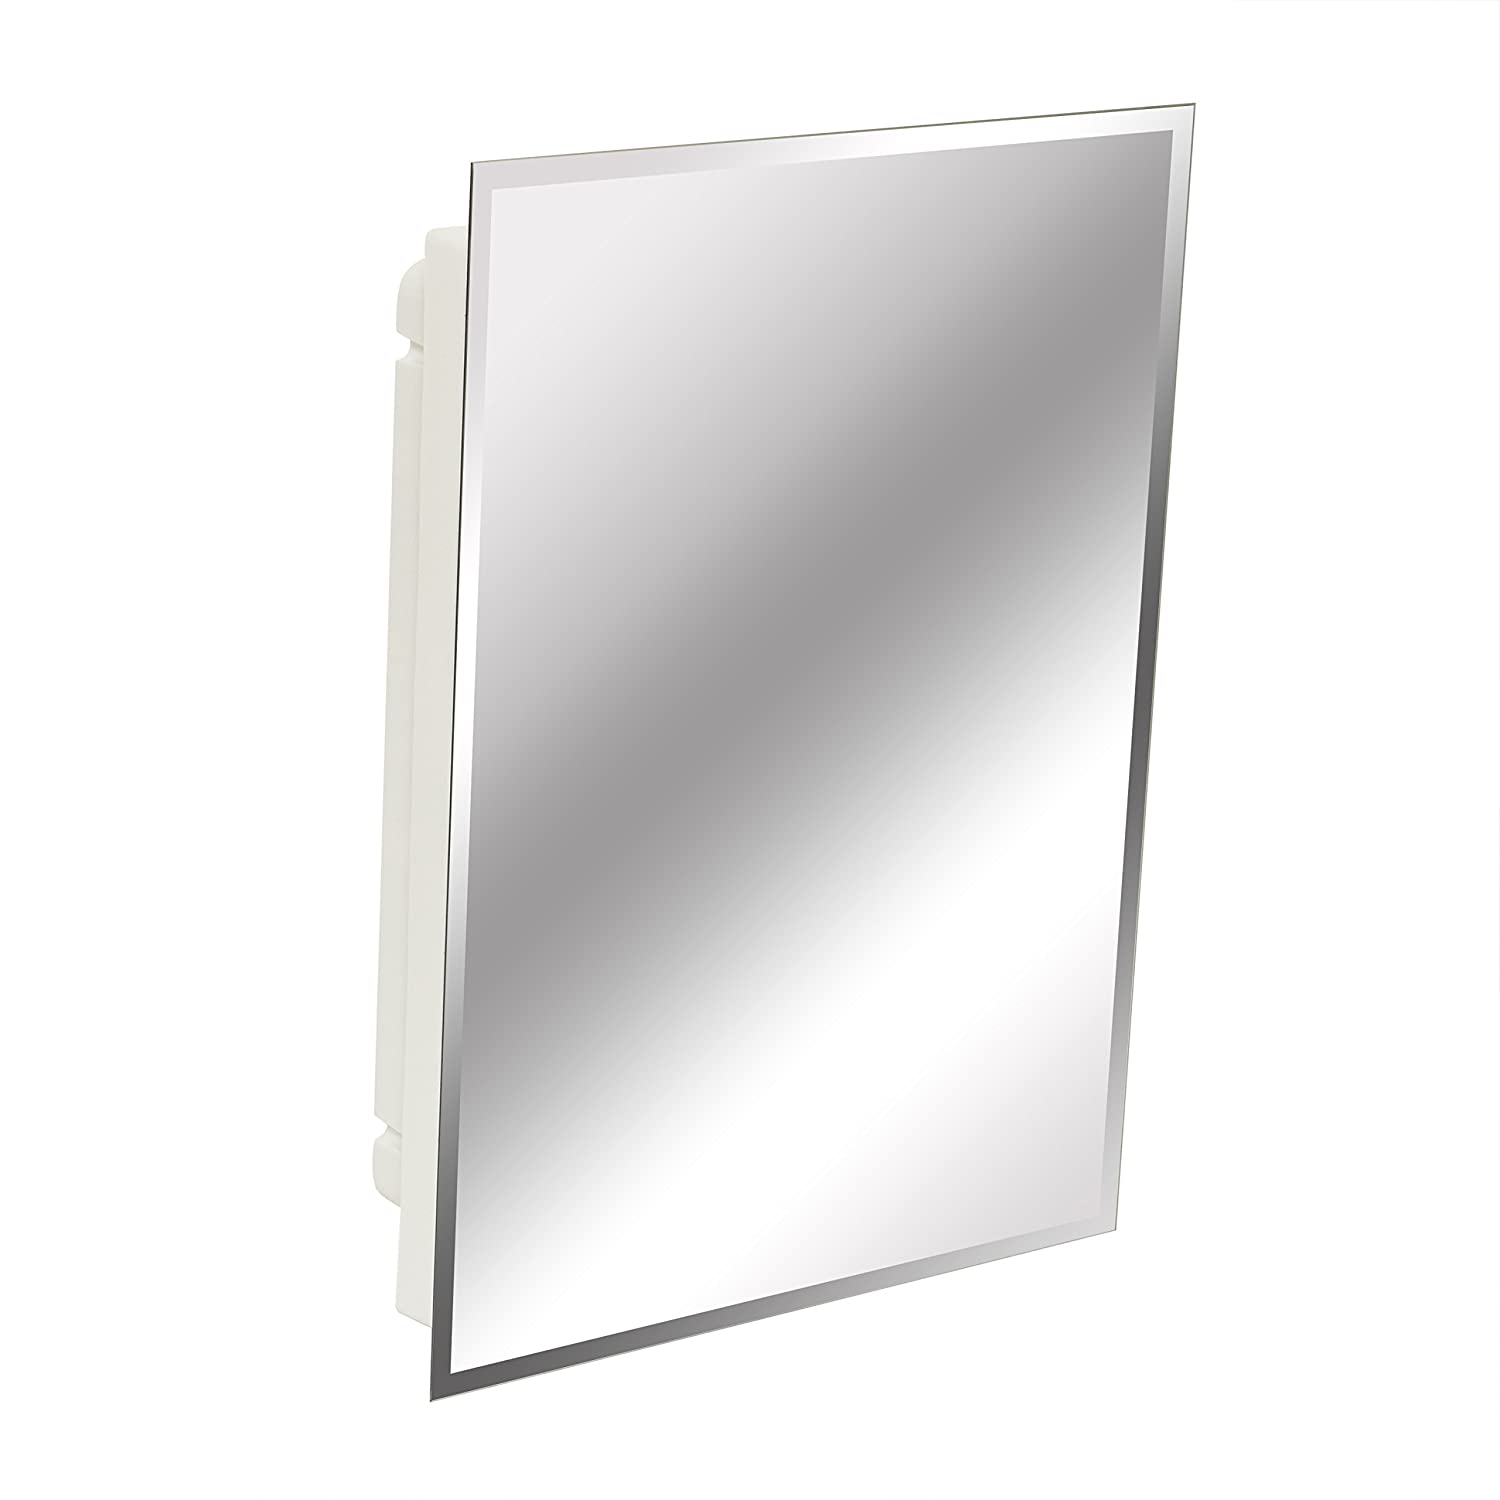 Medicine cabinet with side lighting - American Pride 9622wbar12 Recessed Frameless Beveled Polished Edge Mirror Medicine Cabinet 16 X 22